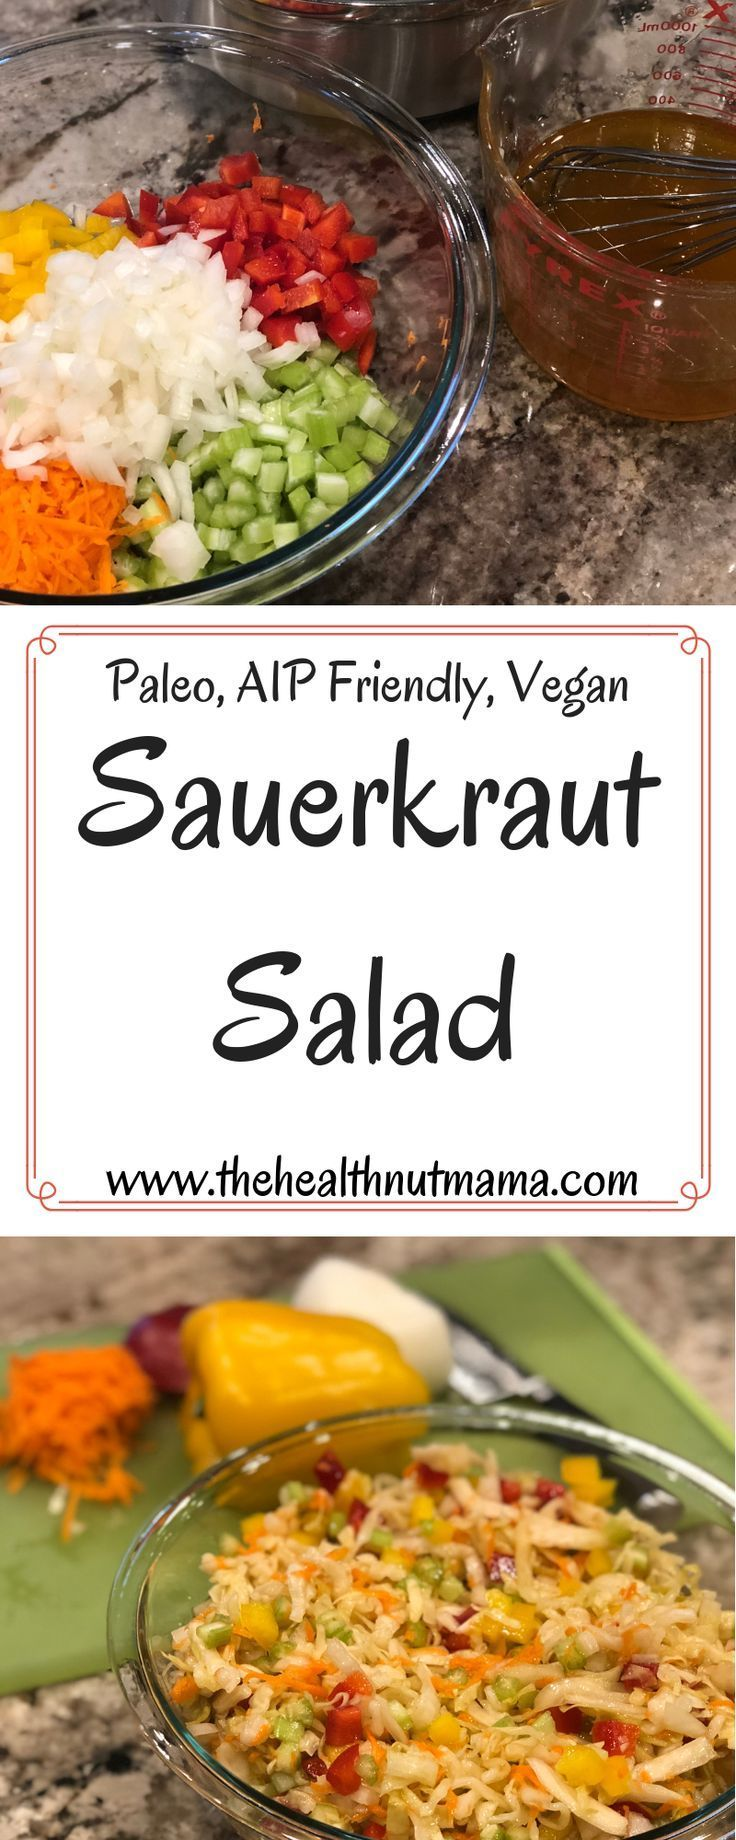 Paleo Sauerkraut Salad is so easy & delicious! Perfect for entertaining, barbecu…